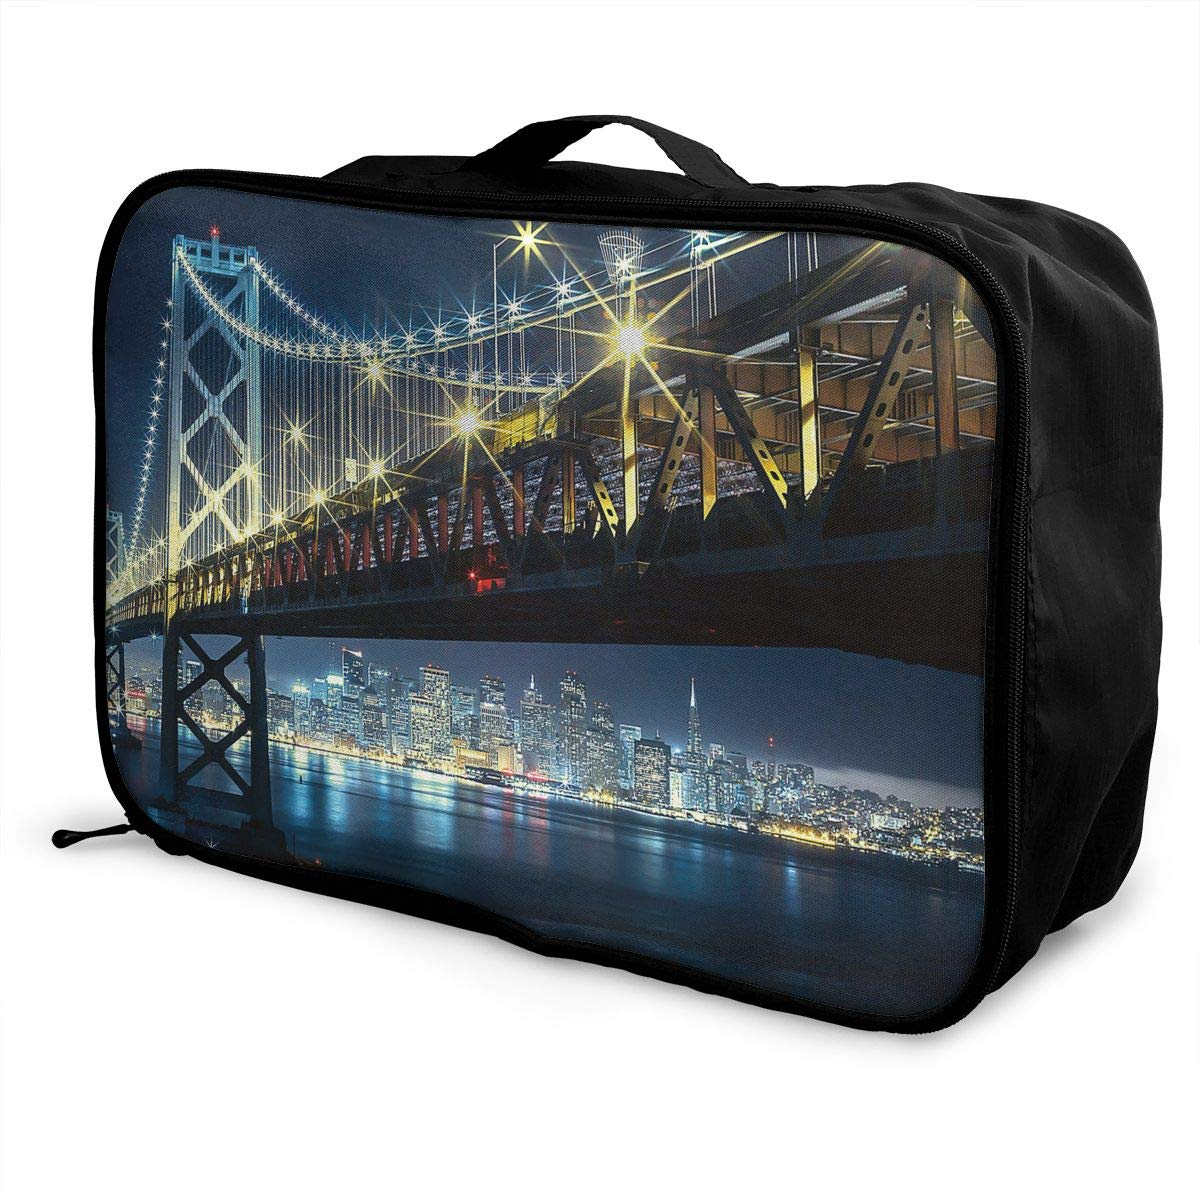 Travel Luggage Duffle Bag Lightweight Portable Handbag Bridge Pattern Large Capacity Waterproof Foldable Storage Tote